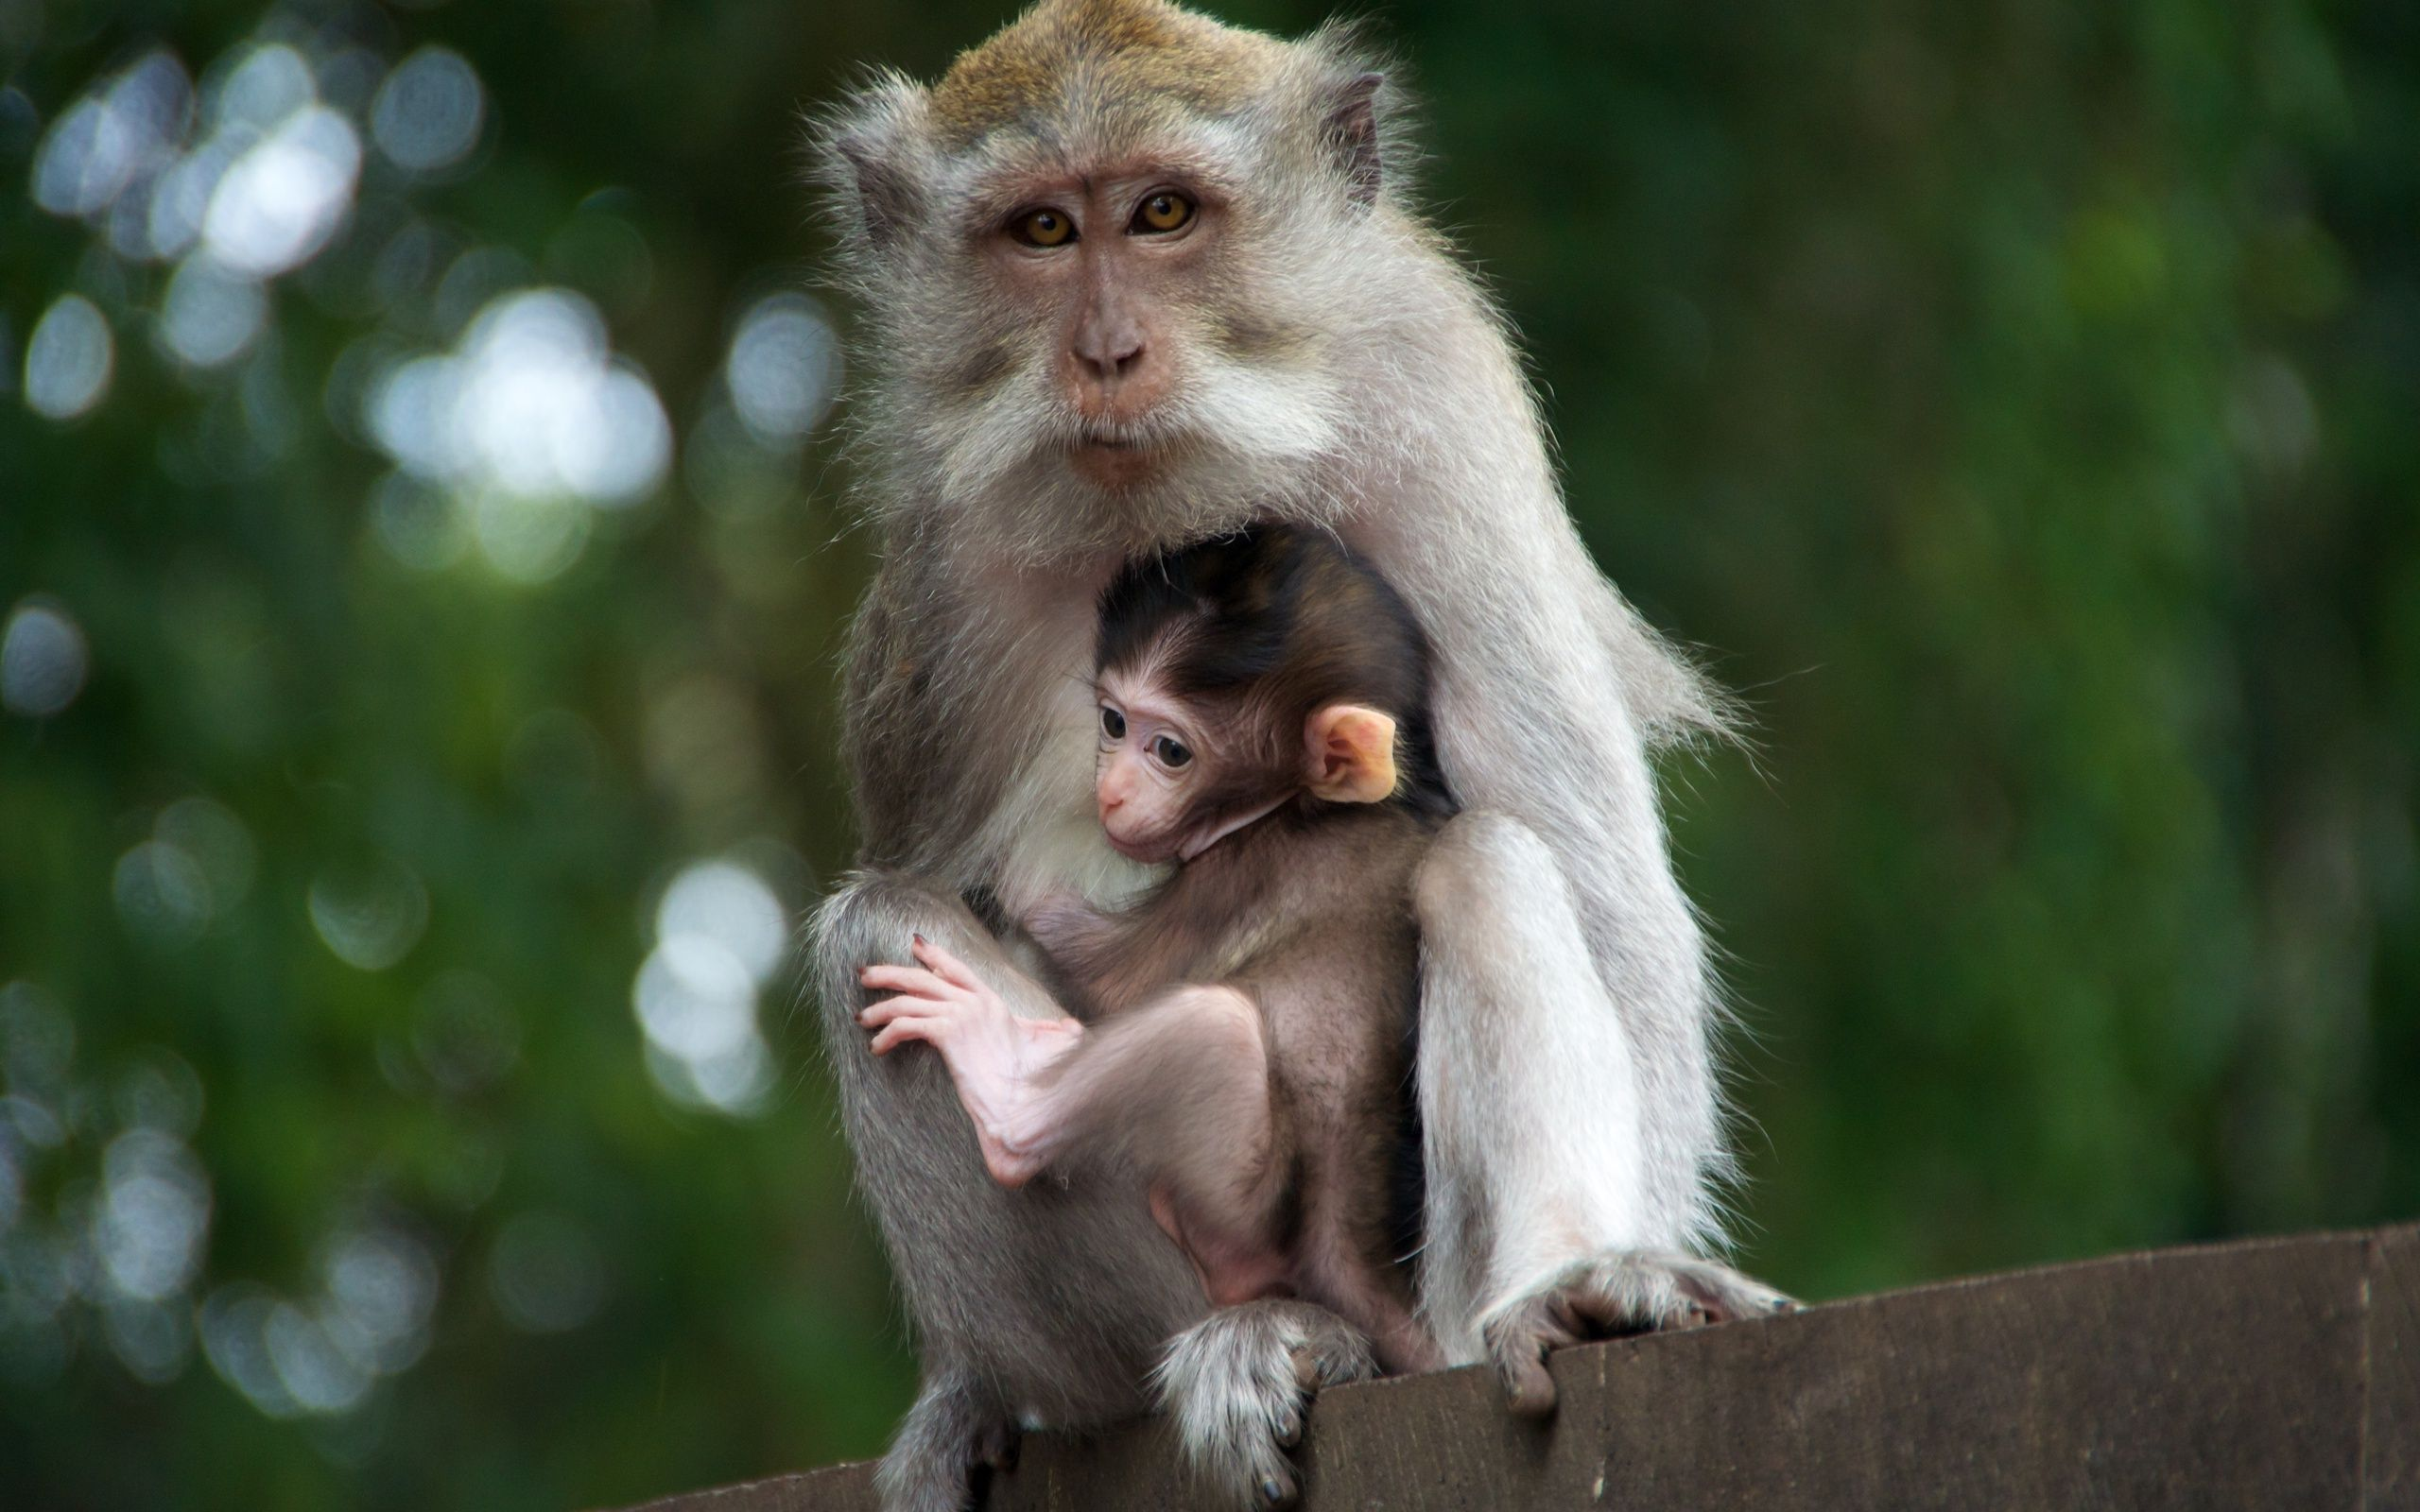 Cute Baby With Parents Wallpaper Mama Monkey And Her Baby Hd Wallpaper Background Image